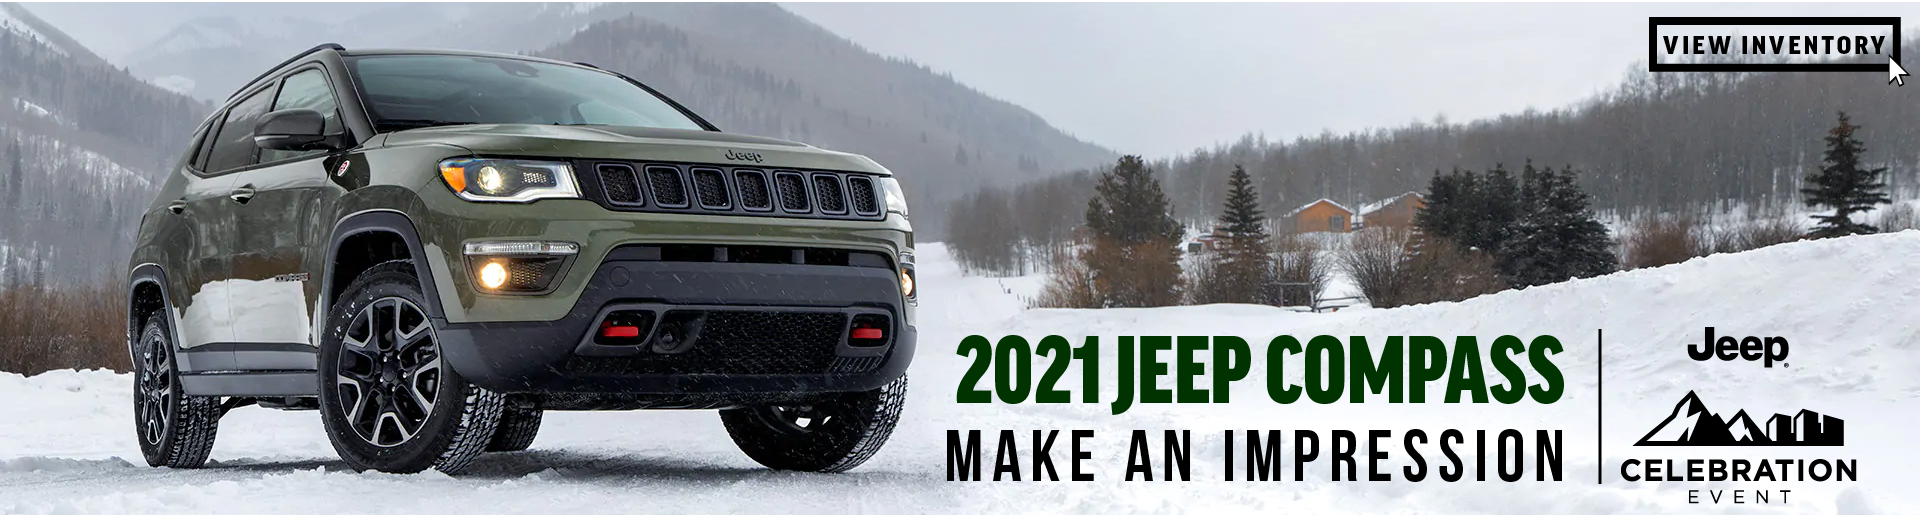 Mar 2021 Jeep Compass Generic